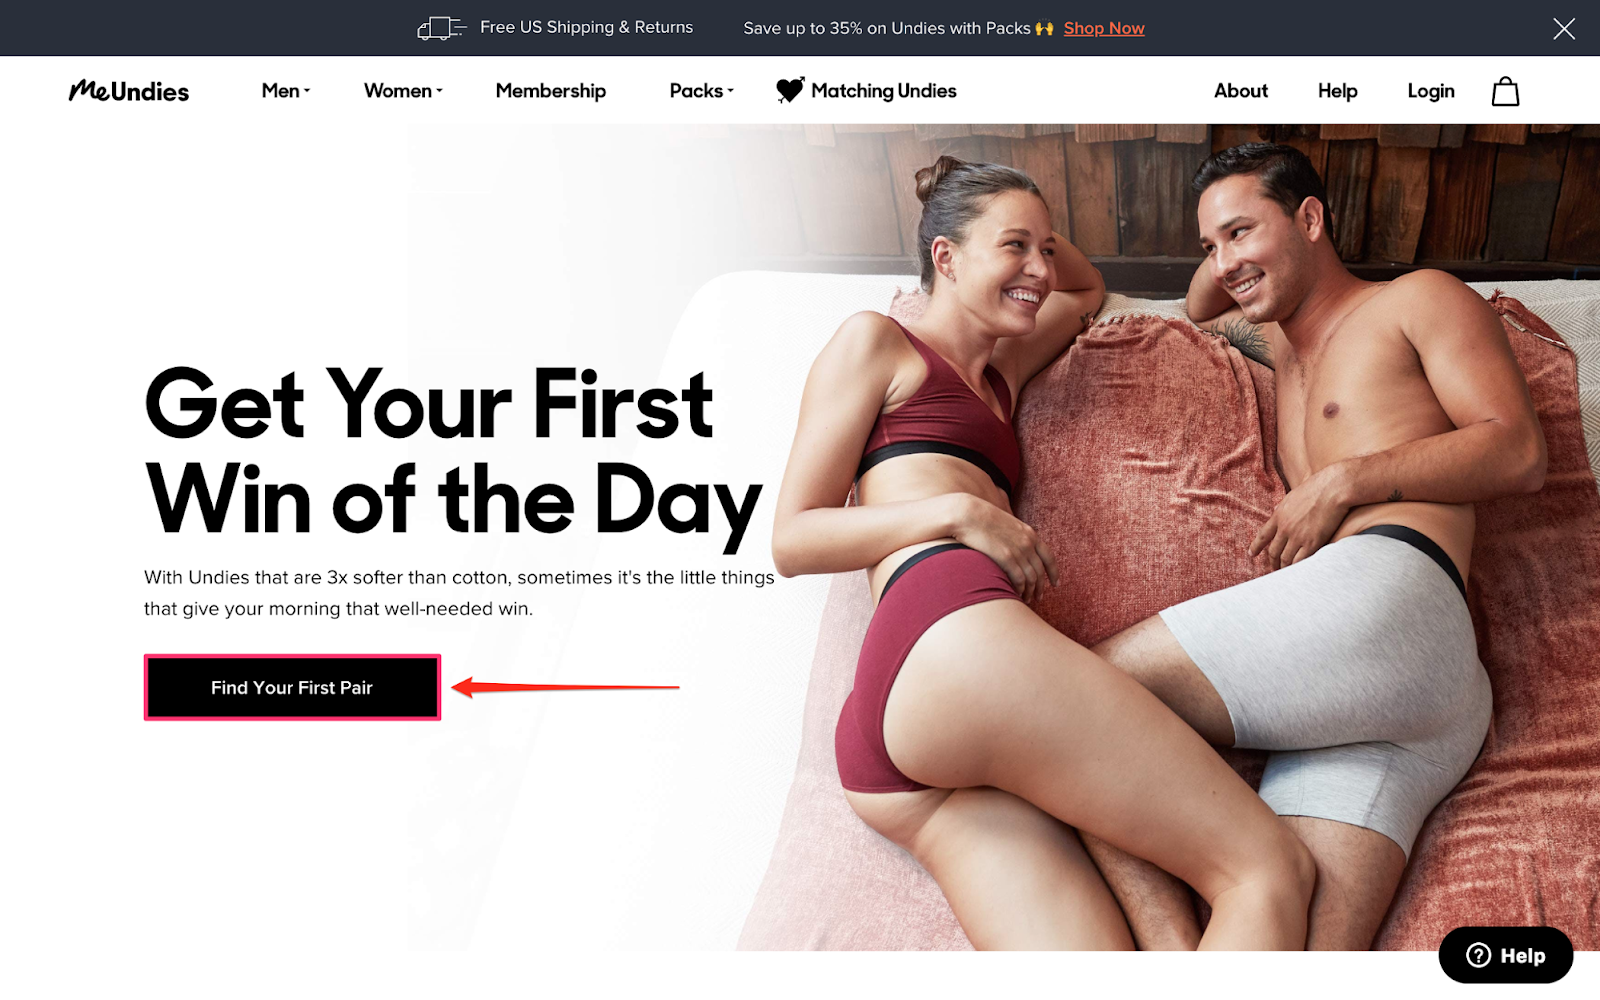 meundies-Find-Your-First-Pair